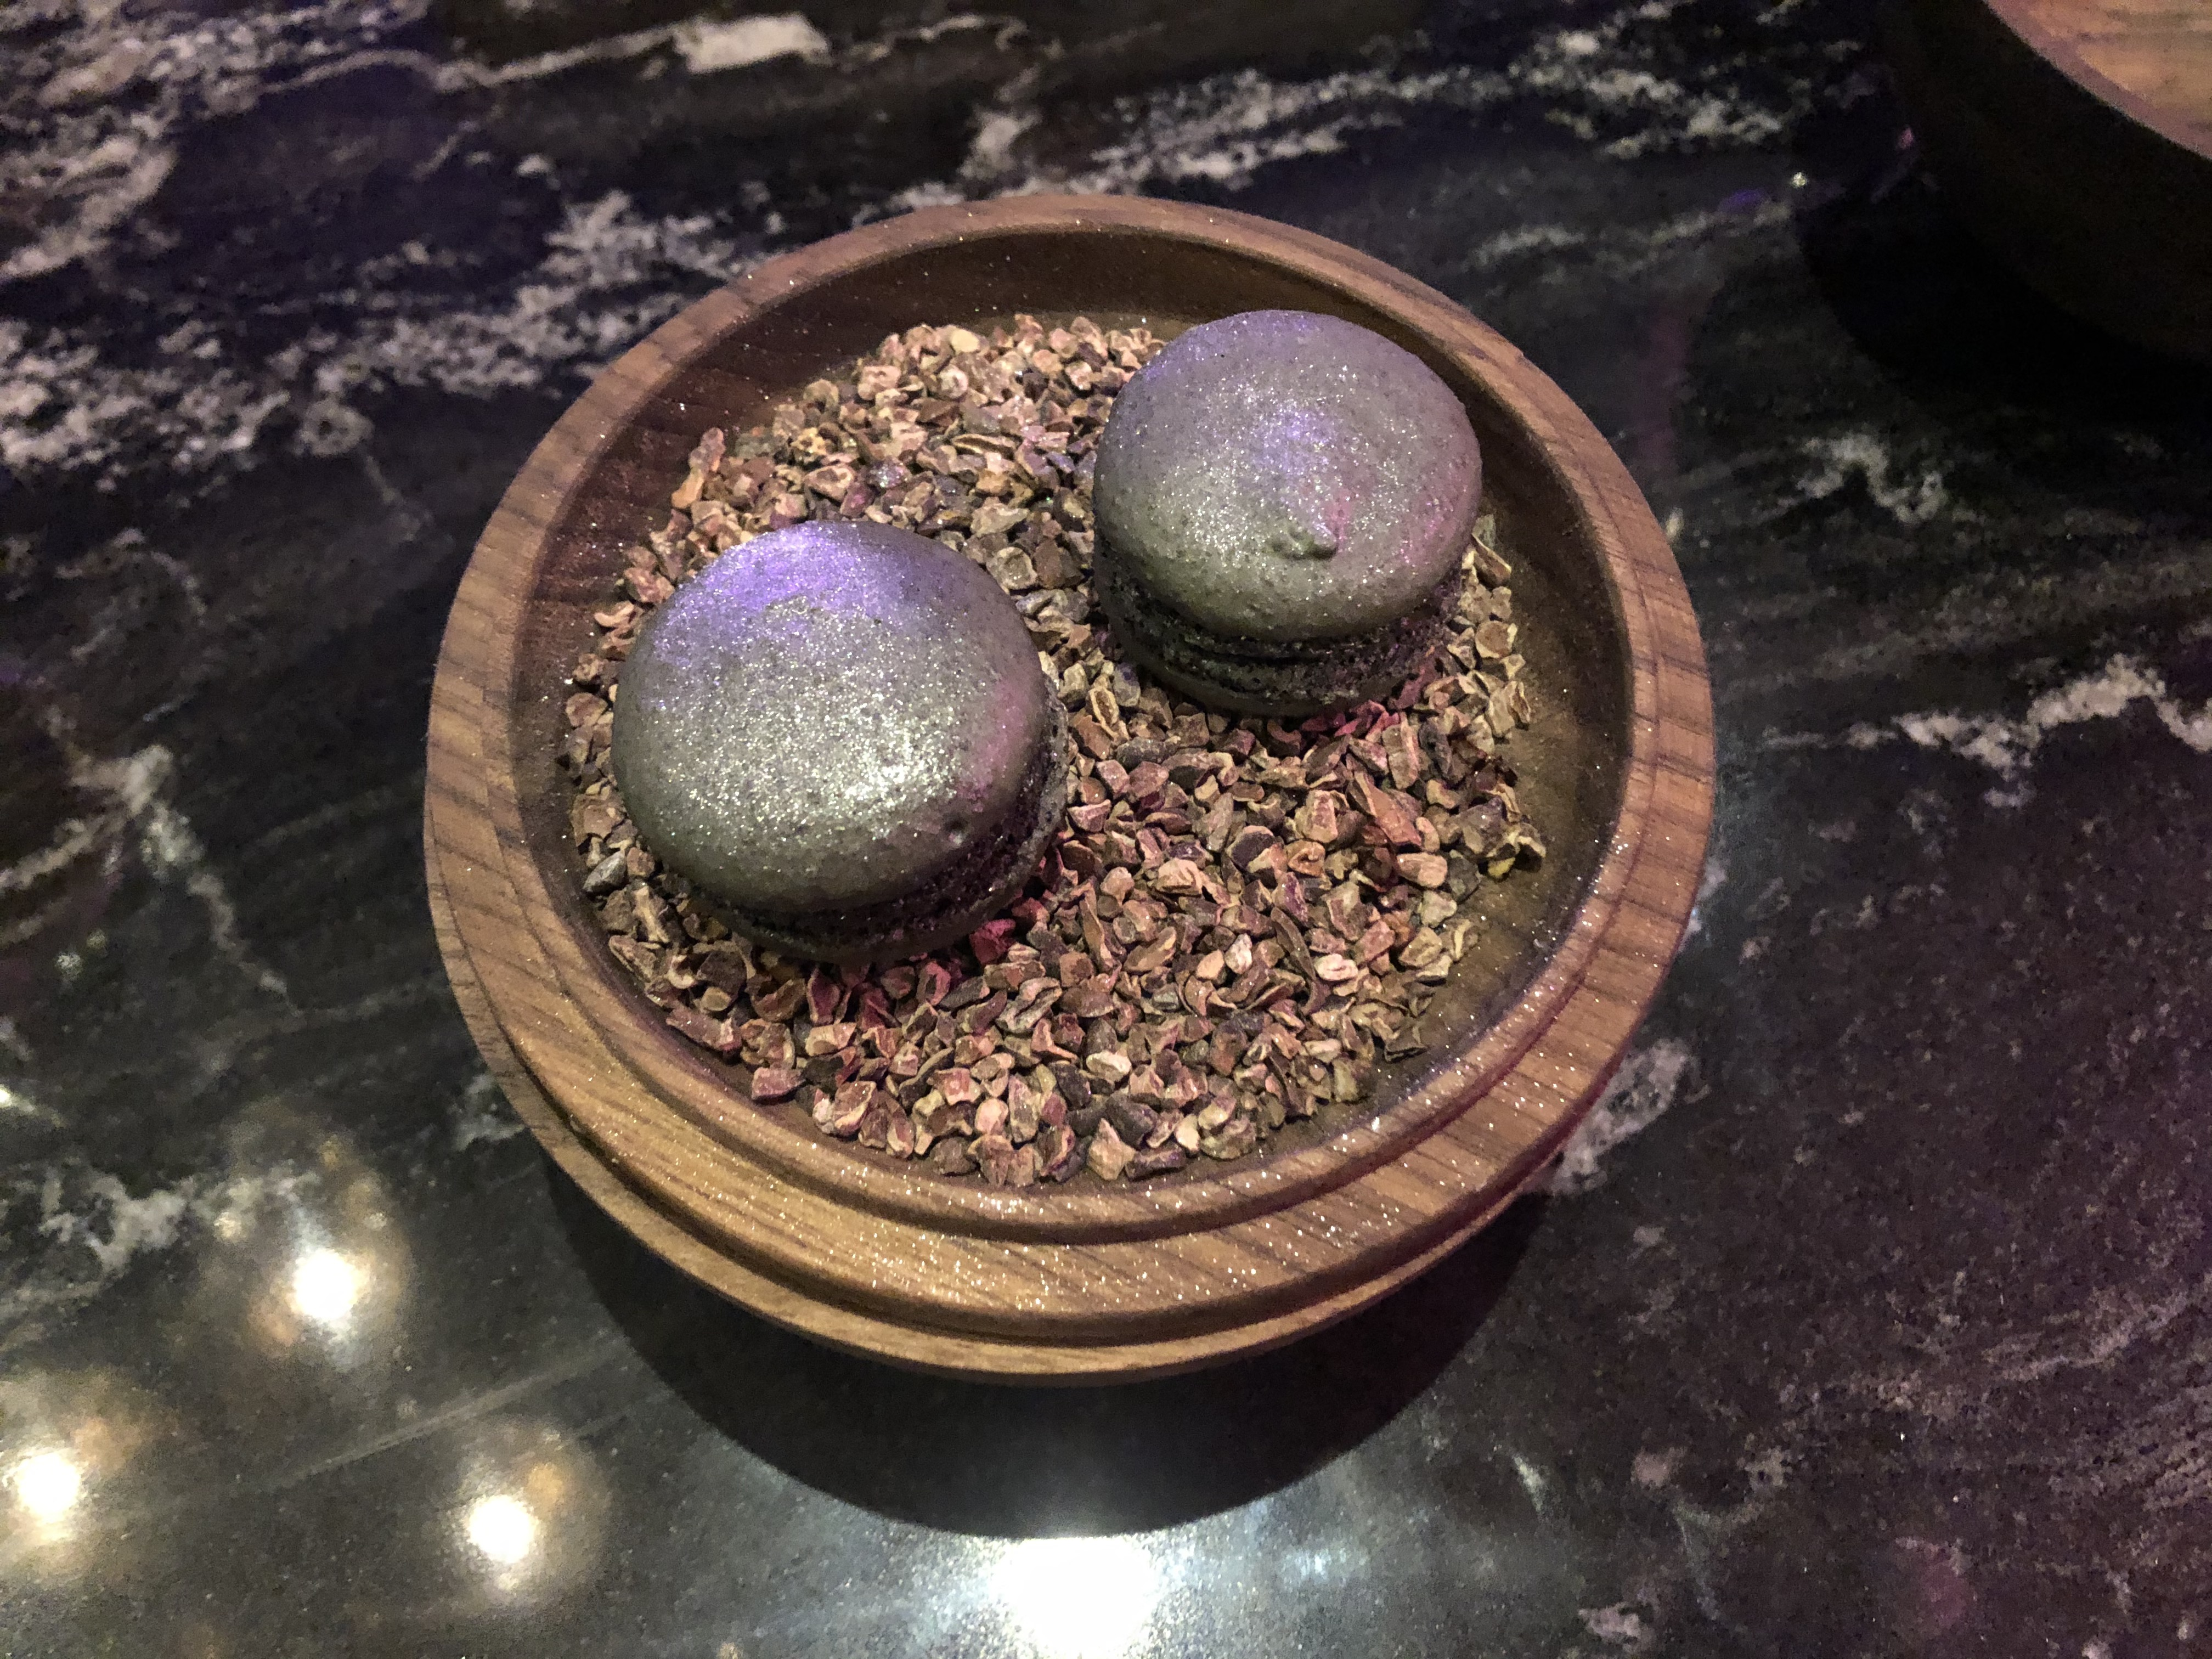 Beautifully Boutique - The Grey Street Hotel, Newcastle: Black Pudding Macarons at Leila Lily's